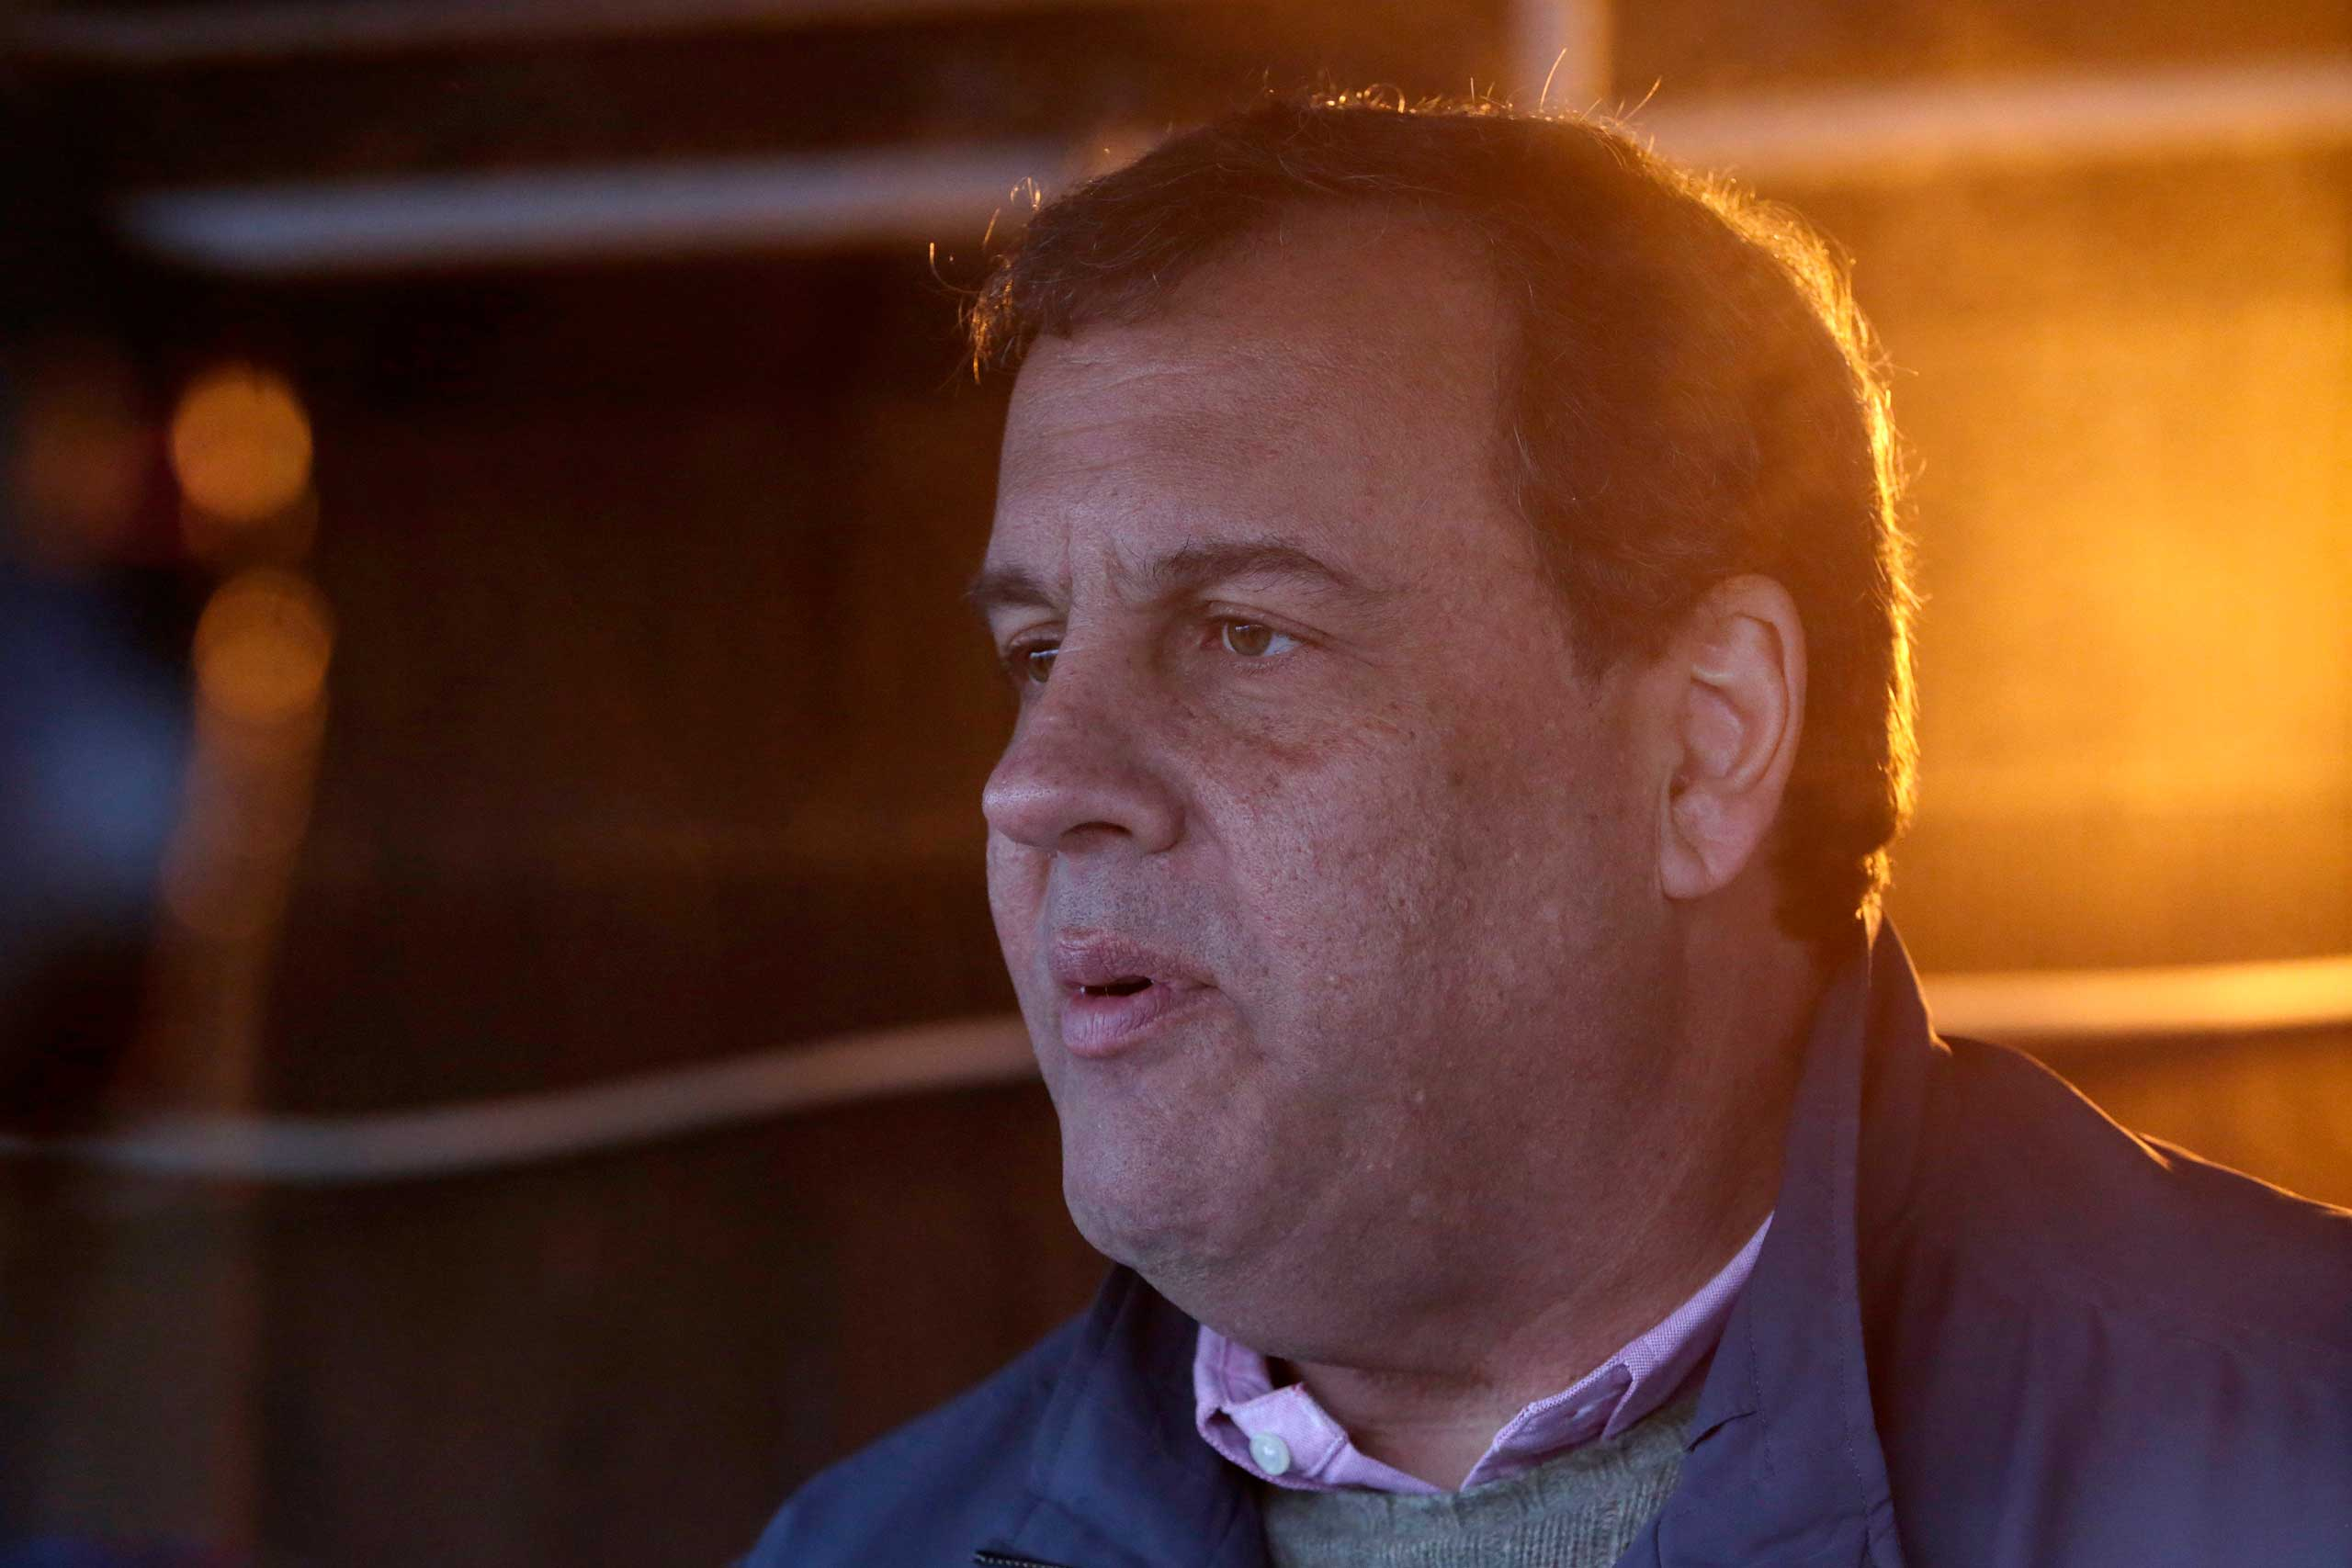 New Jersey Gov. Chris Christie hands out a pre-Thanksgiving meal at the St. John's Church soup kitchen in Newark, N.J. on Nov. 26, 2014, in Newark, N.J.